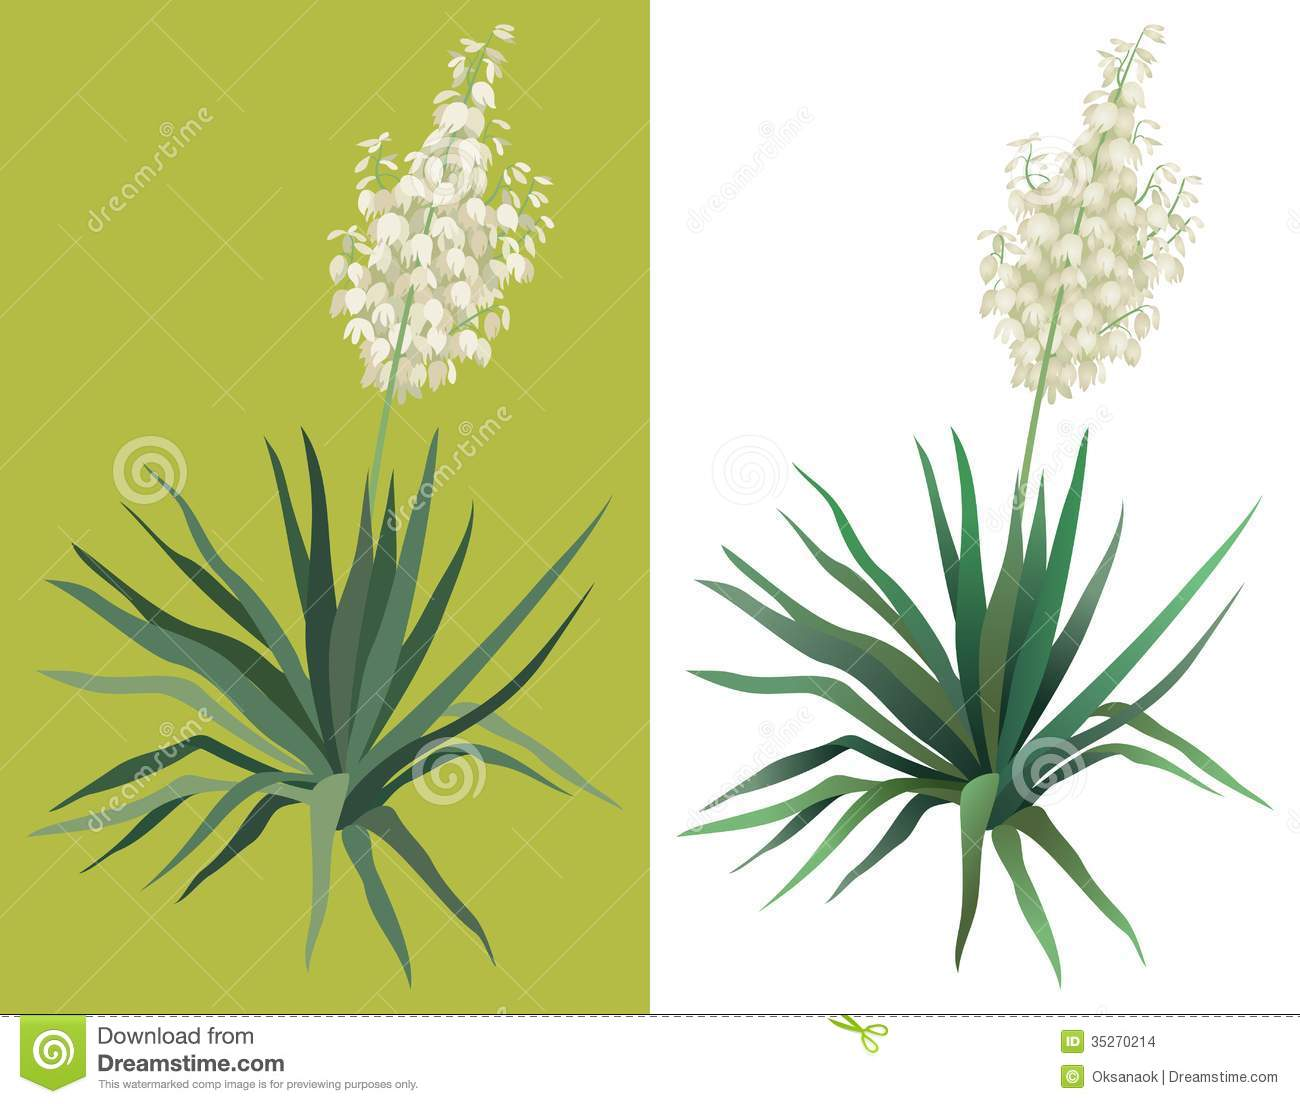 Flowering plant yucca stock vector illustration of blossom 35270214 flowering plant yucca mightylinksfo